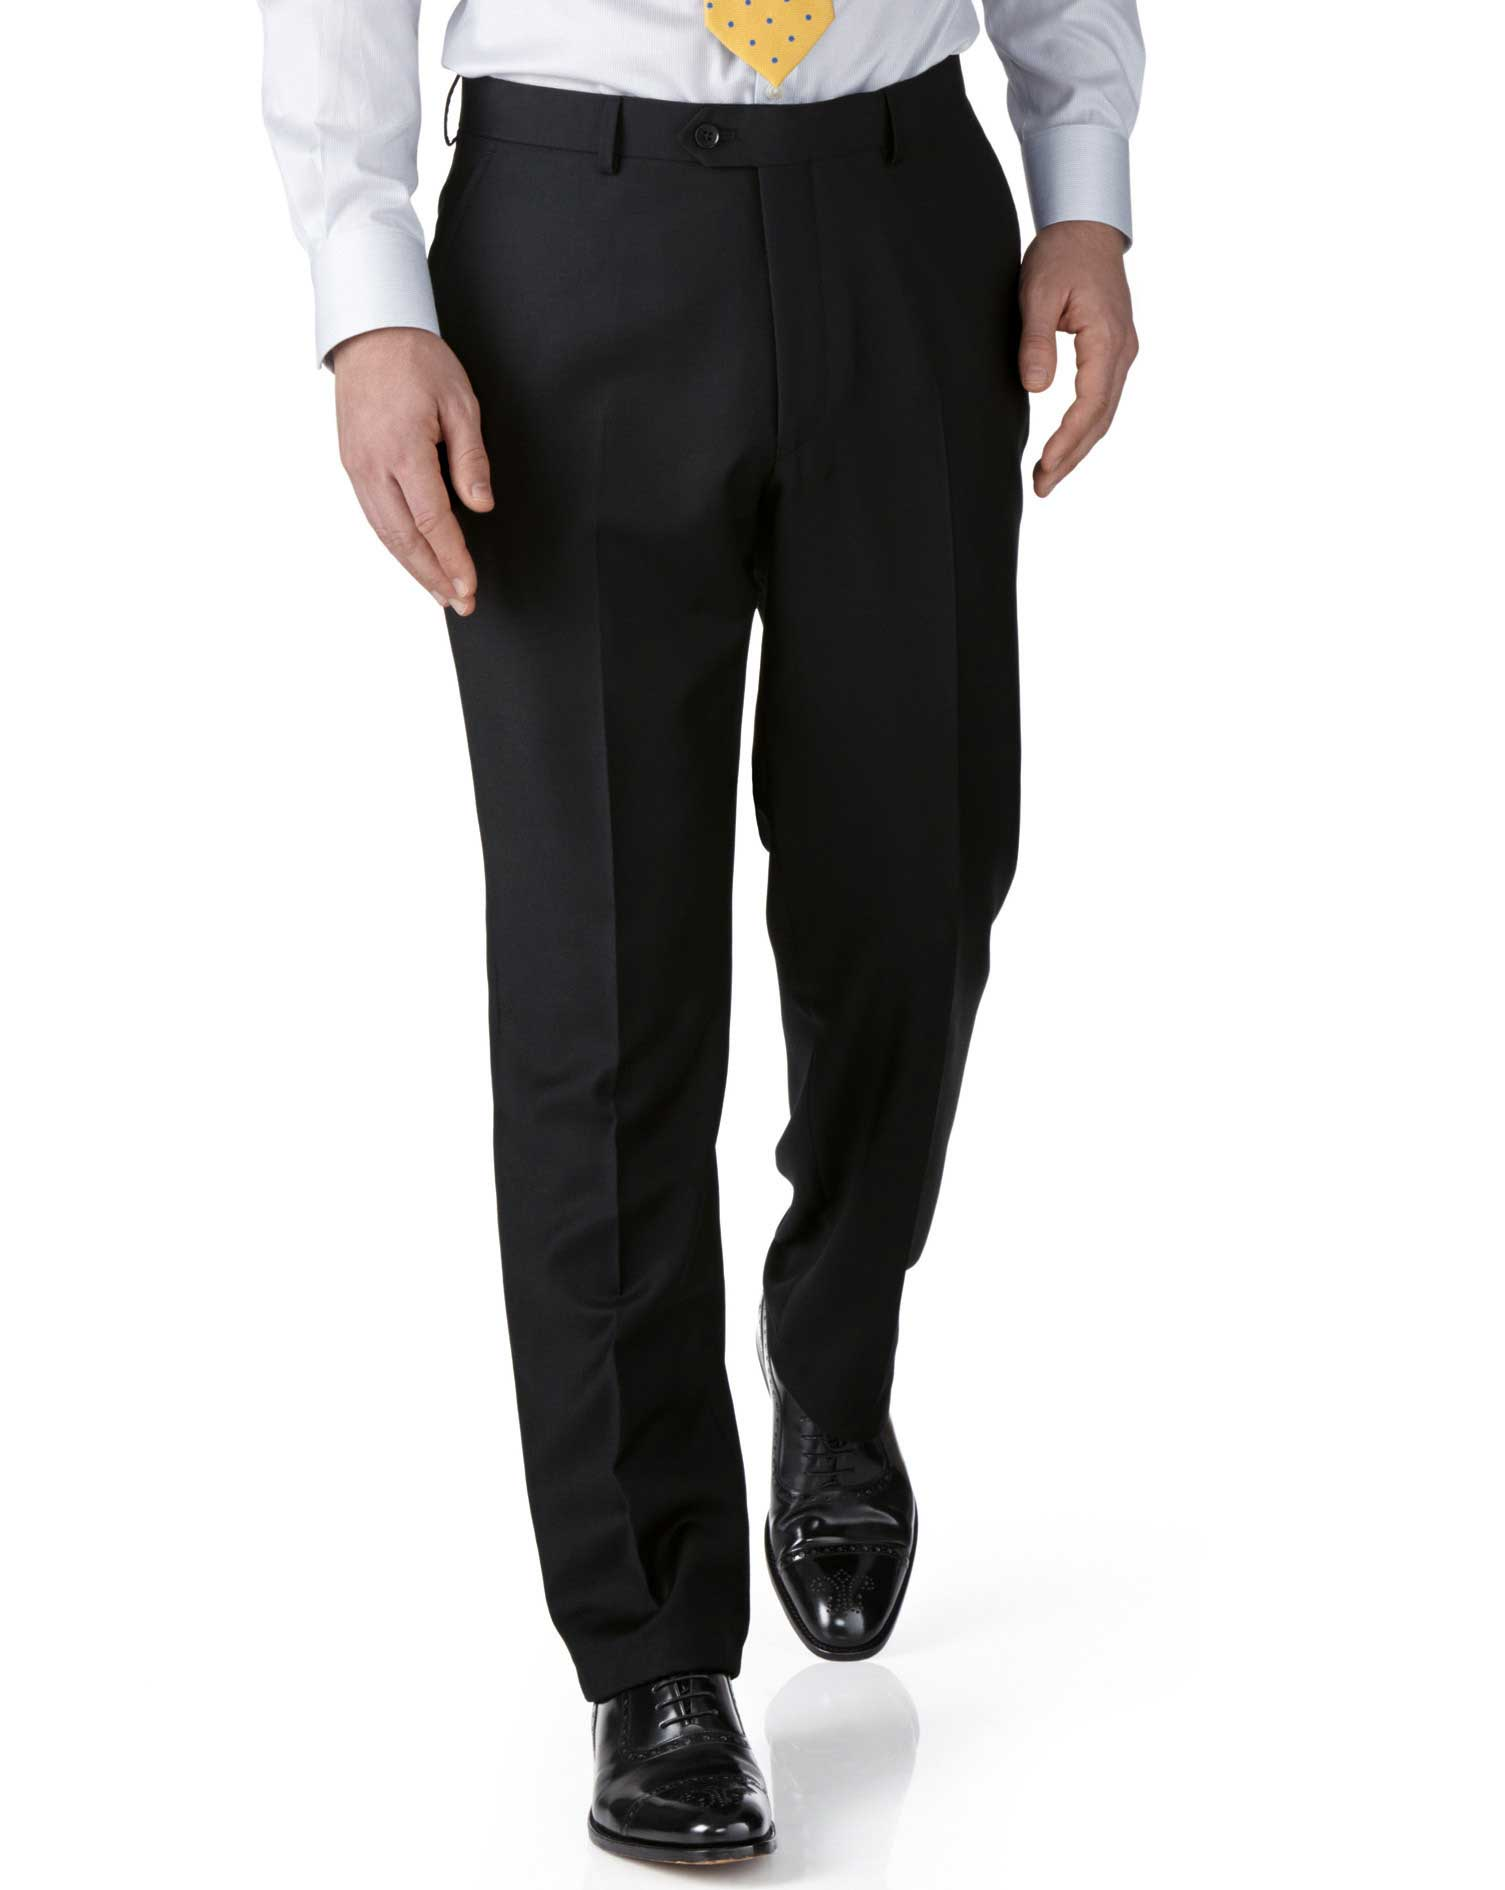 Black Extra Slim Fit Twill Business Suit Trousers Size W30 L32 by Charles Tyrwhitt